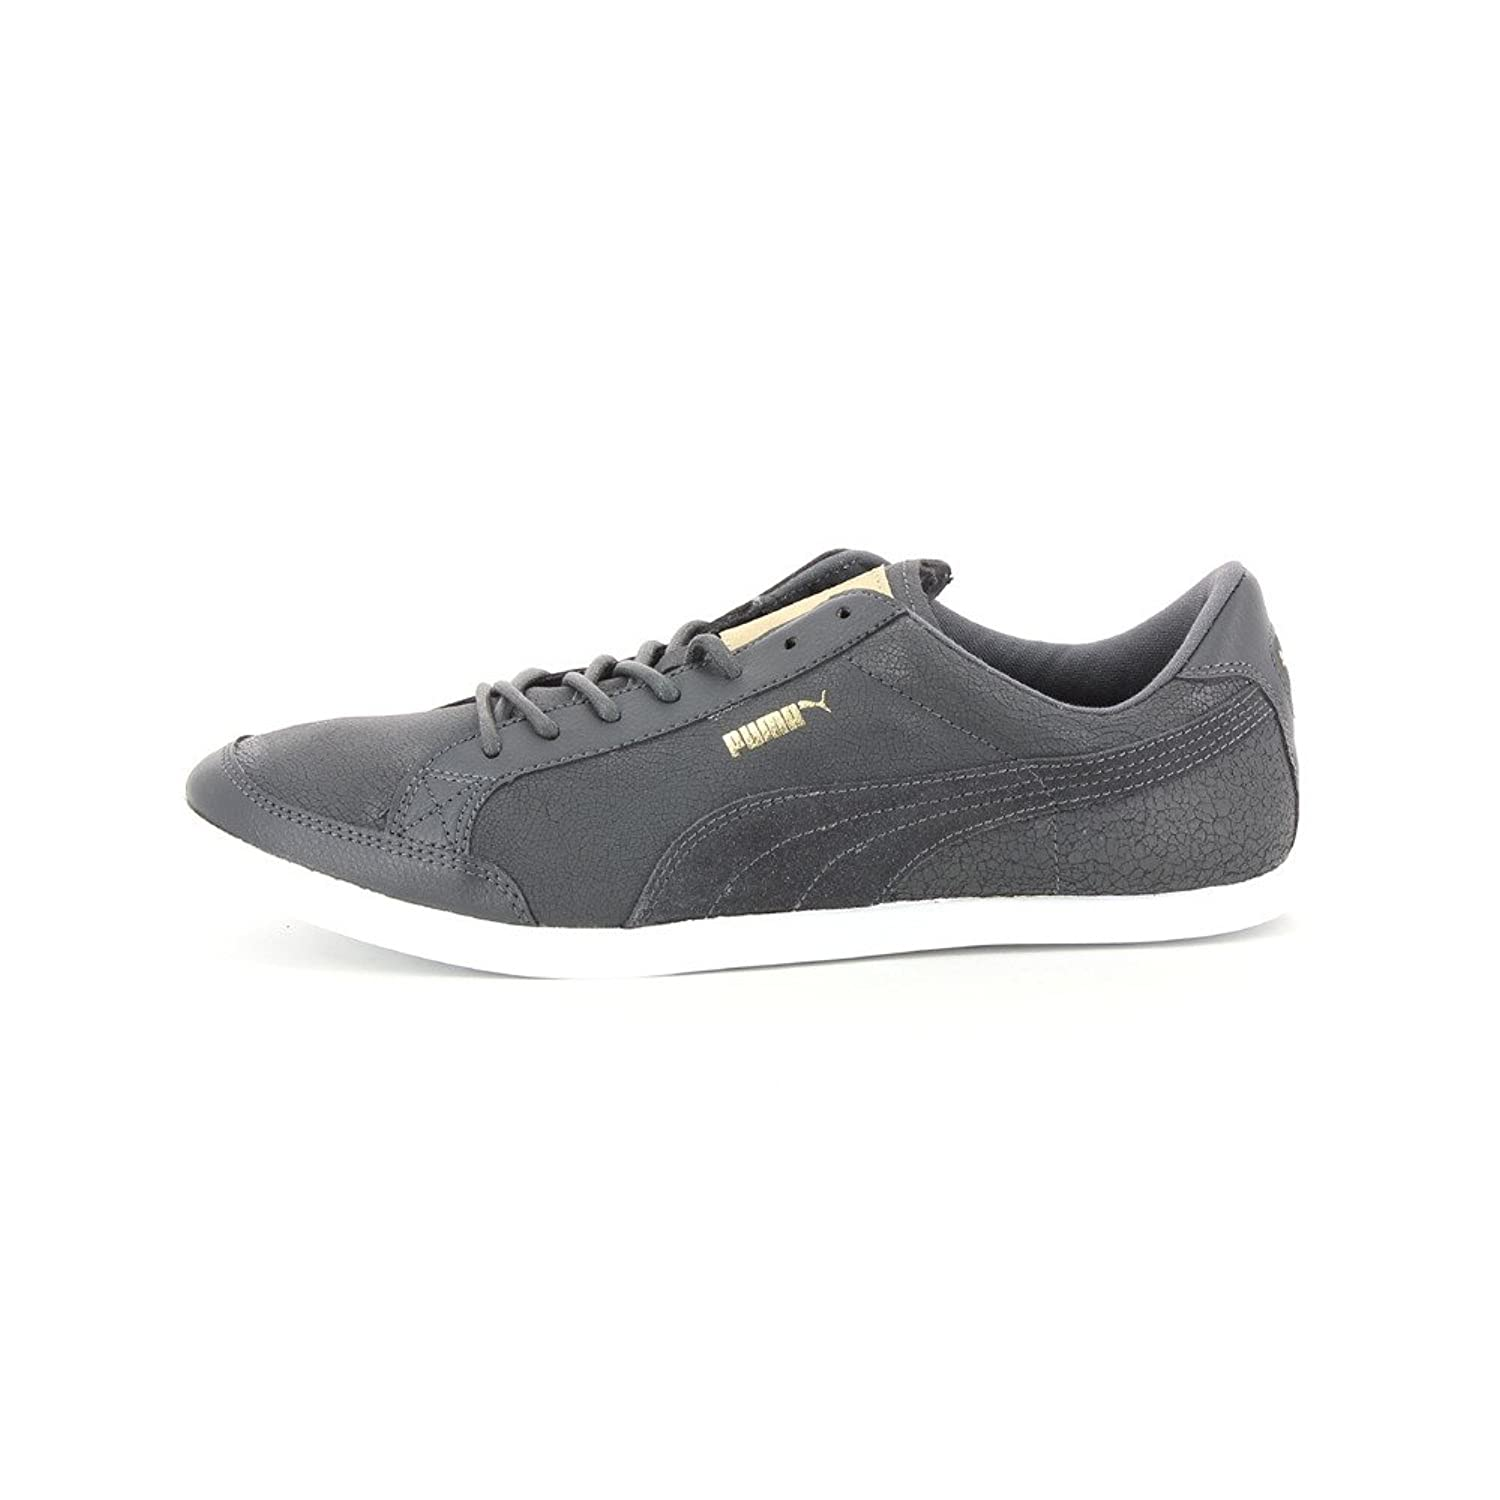 Puma LoPro Catskil Citi Series 35665702, Baskets Mode Homme - taille 43